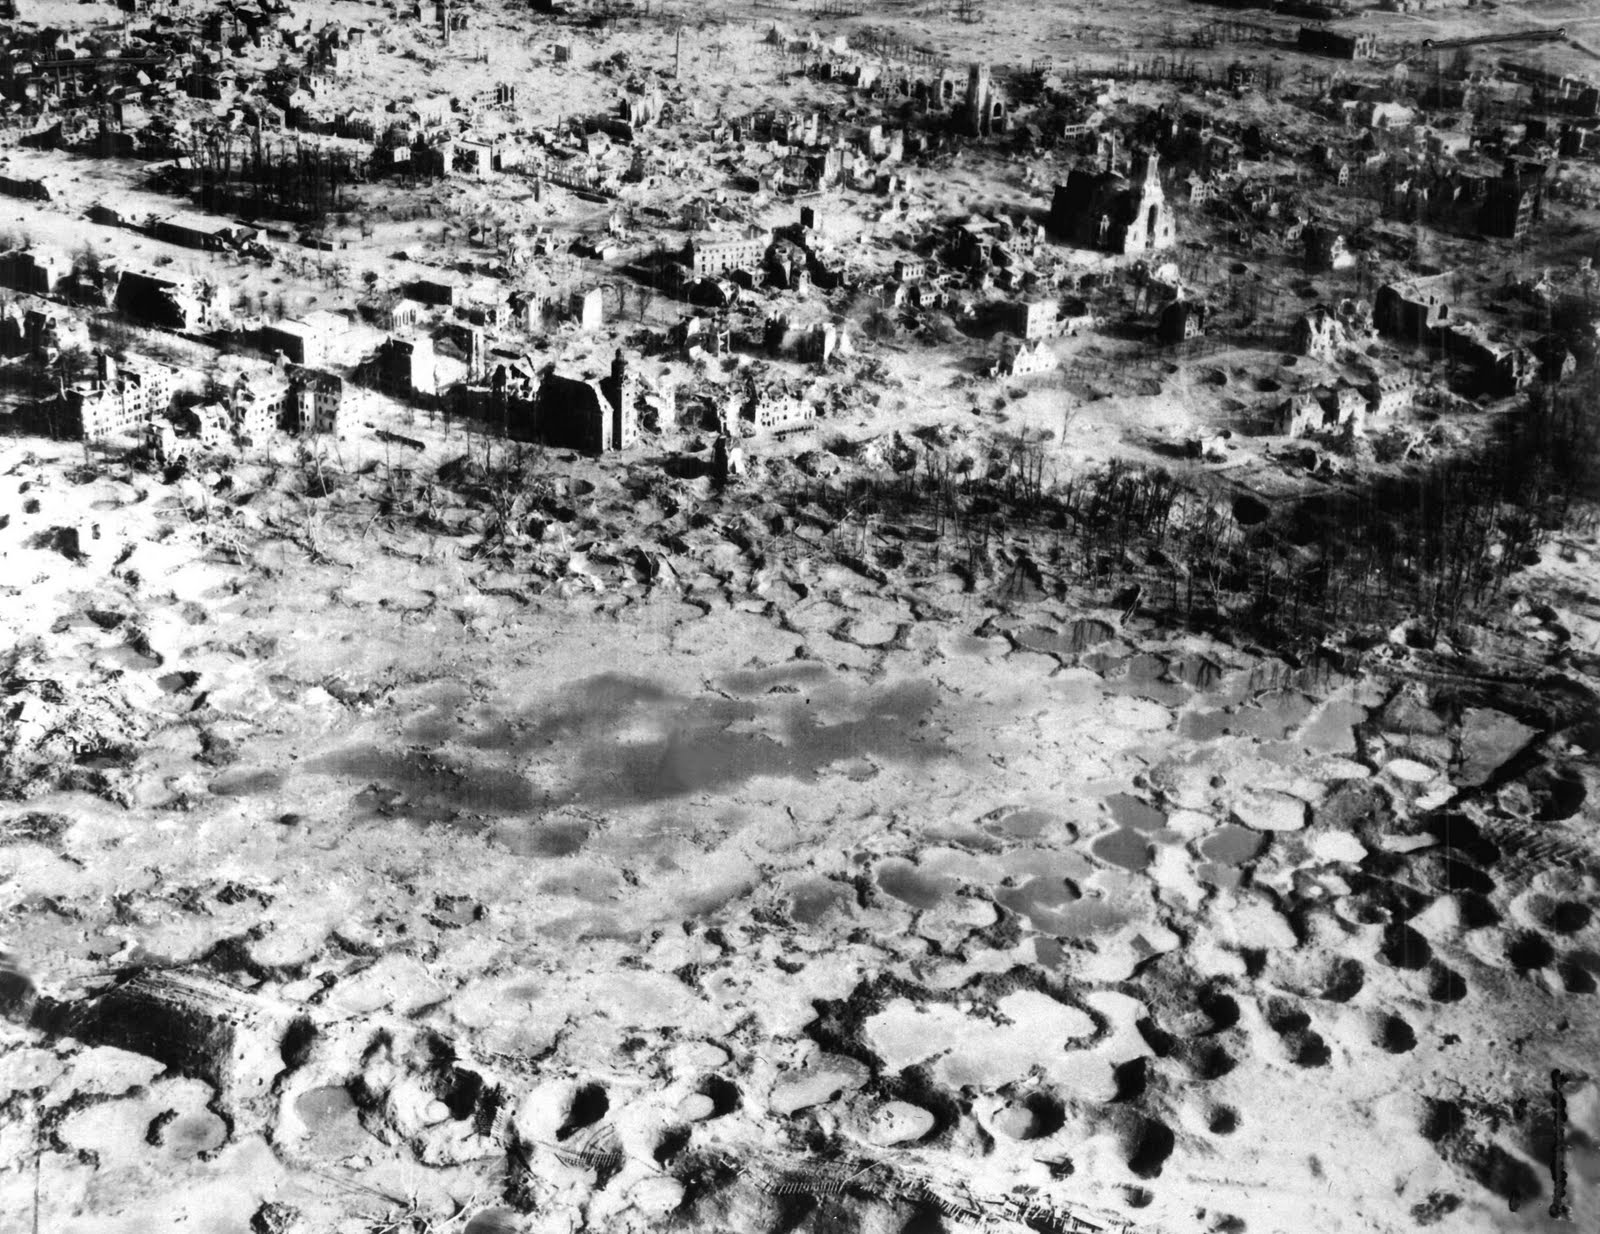 hiroshima and nagasaki bombings Using extensive interviews with survivors and archival footage, an examination reveals the aftermath of the atomic bombing of hiroshima and nagasaki.